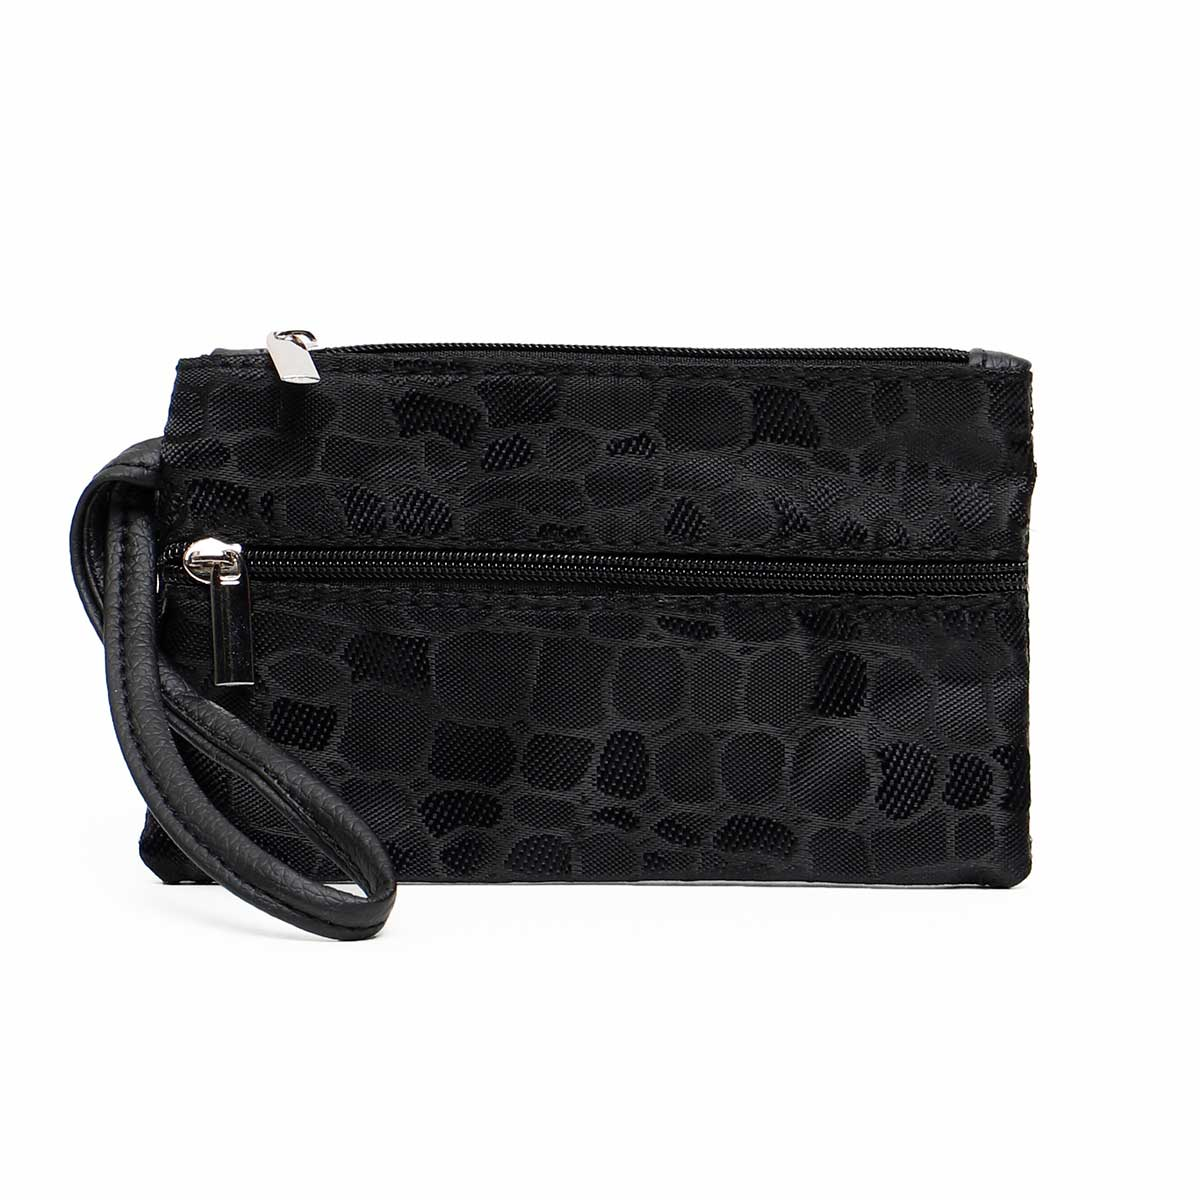 BLACK COBBLESTONE COIN/CARD PURSE WITH 3 ZIPPERS